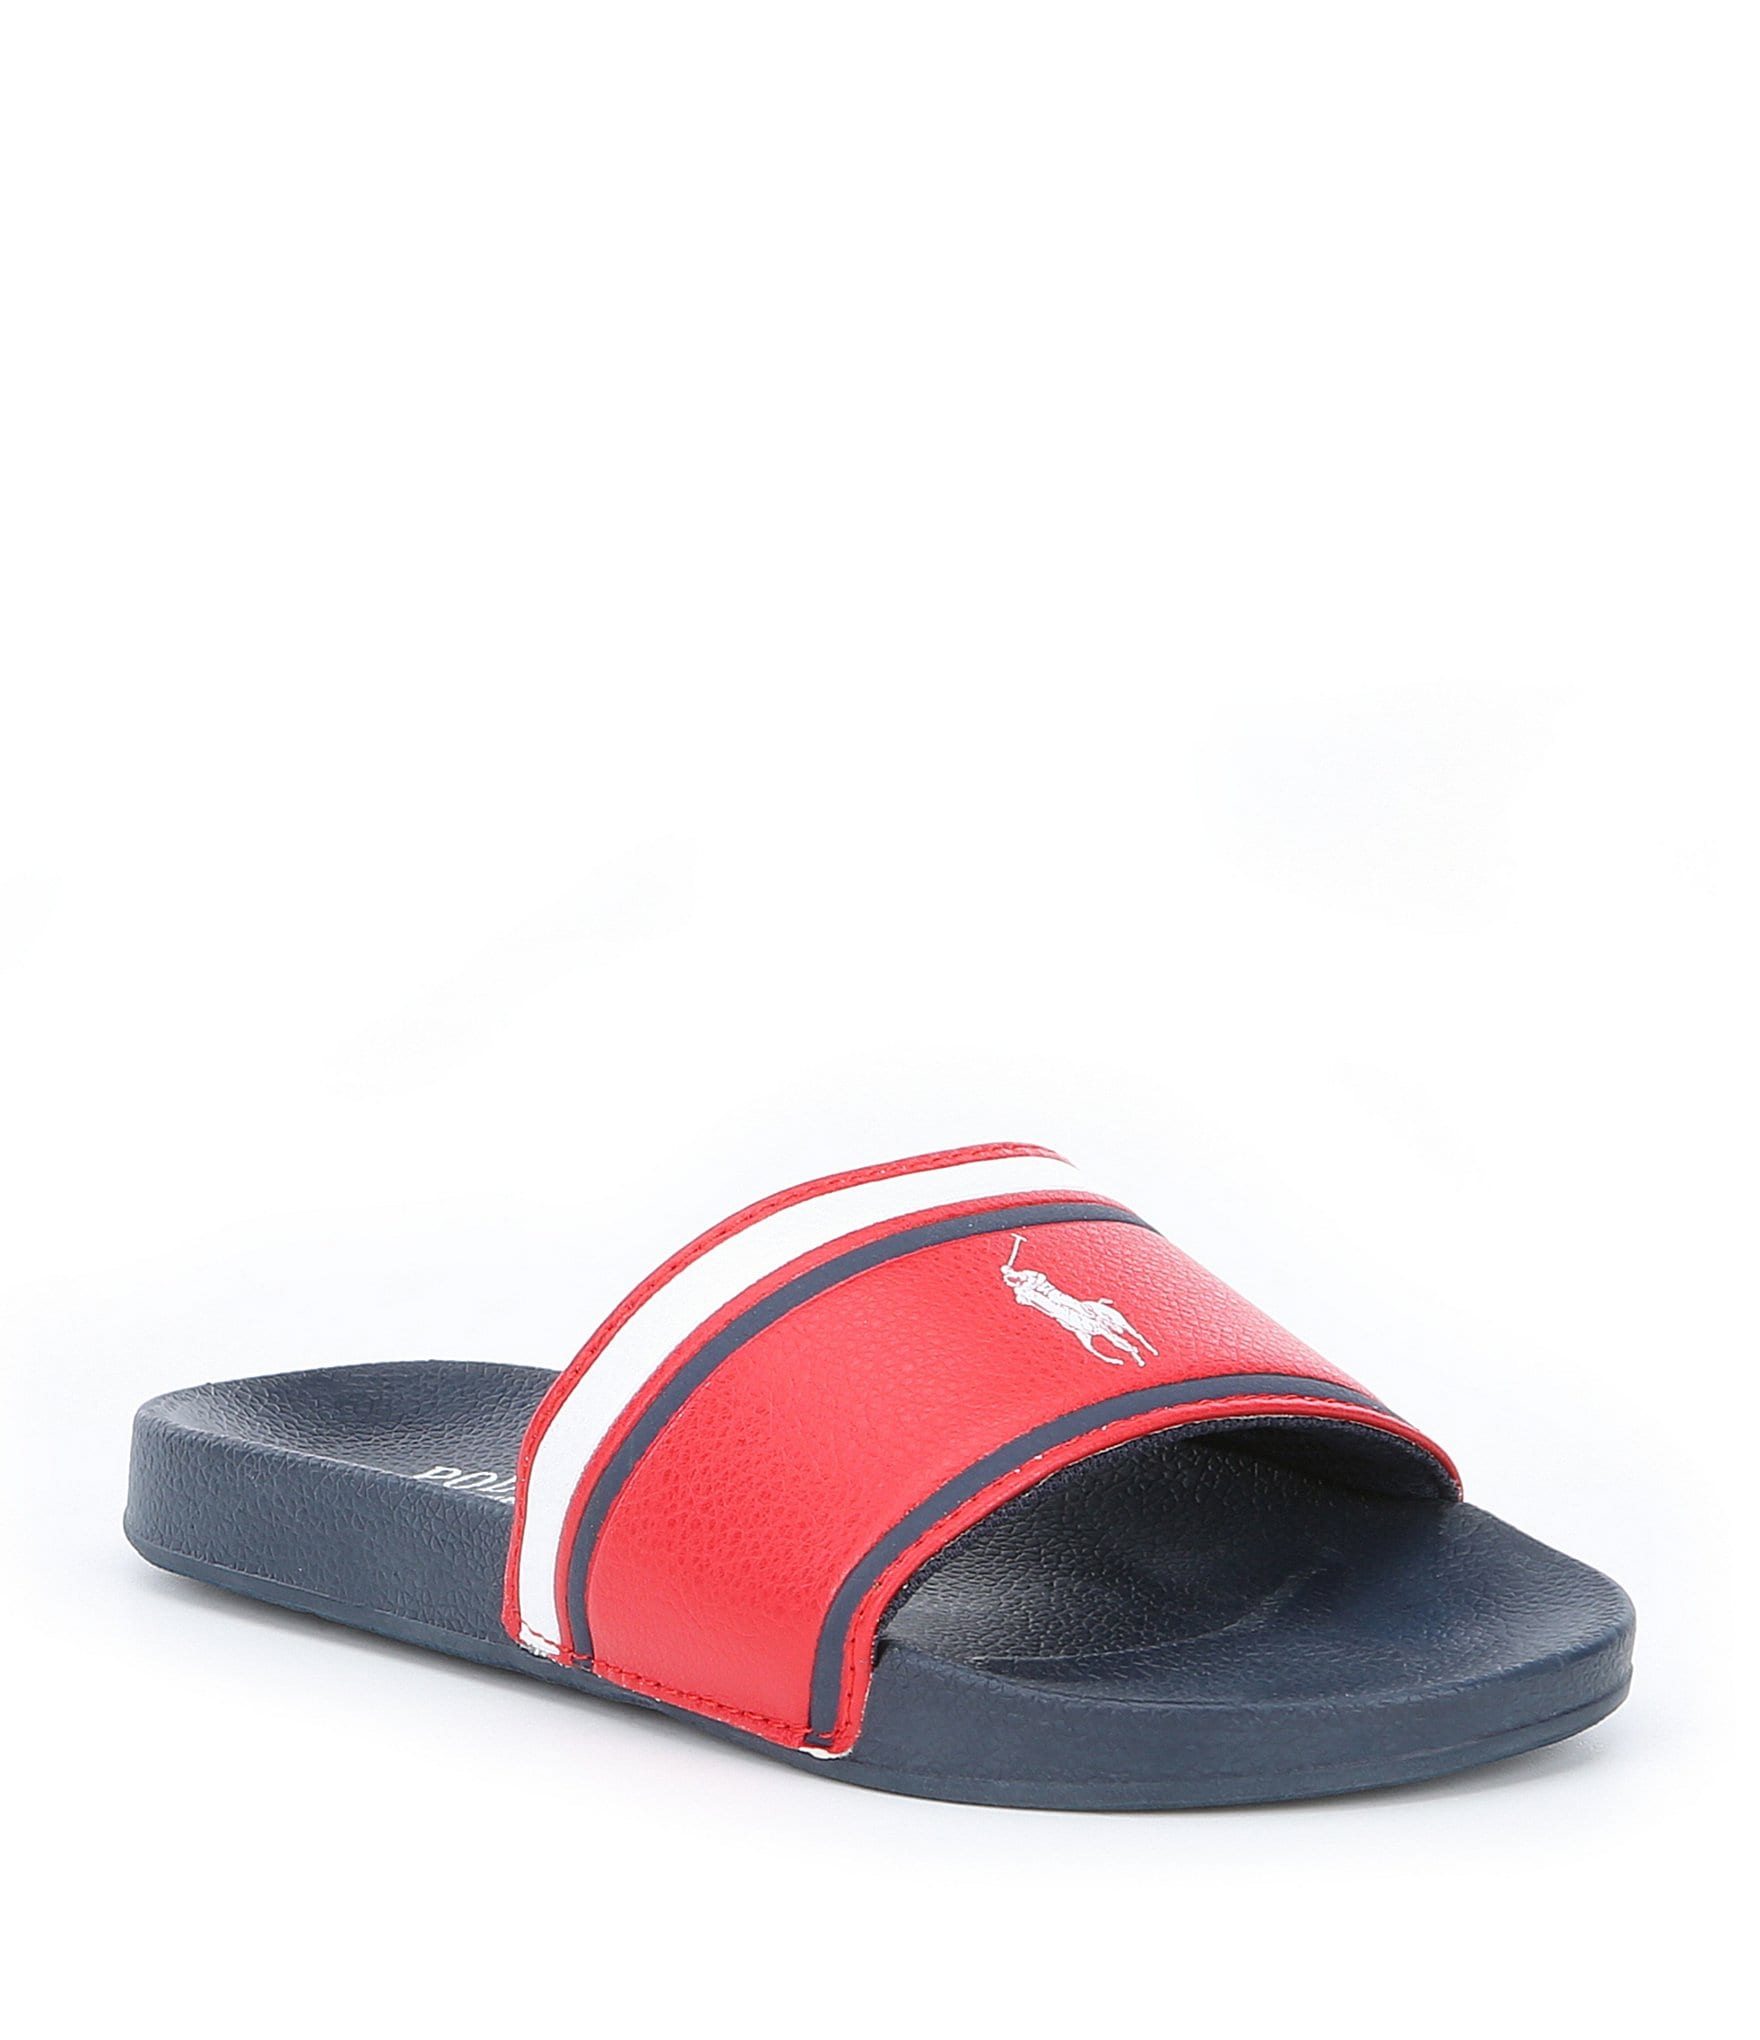 56d70ac77 Youth Boys  Casual Flat Slide Sandals